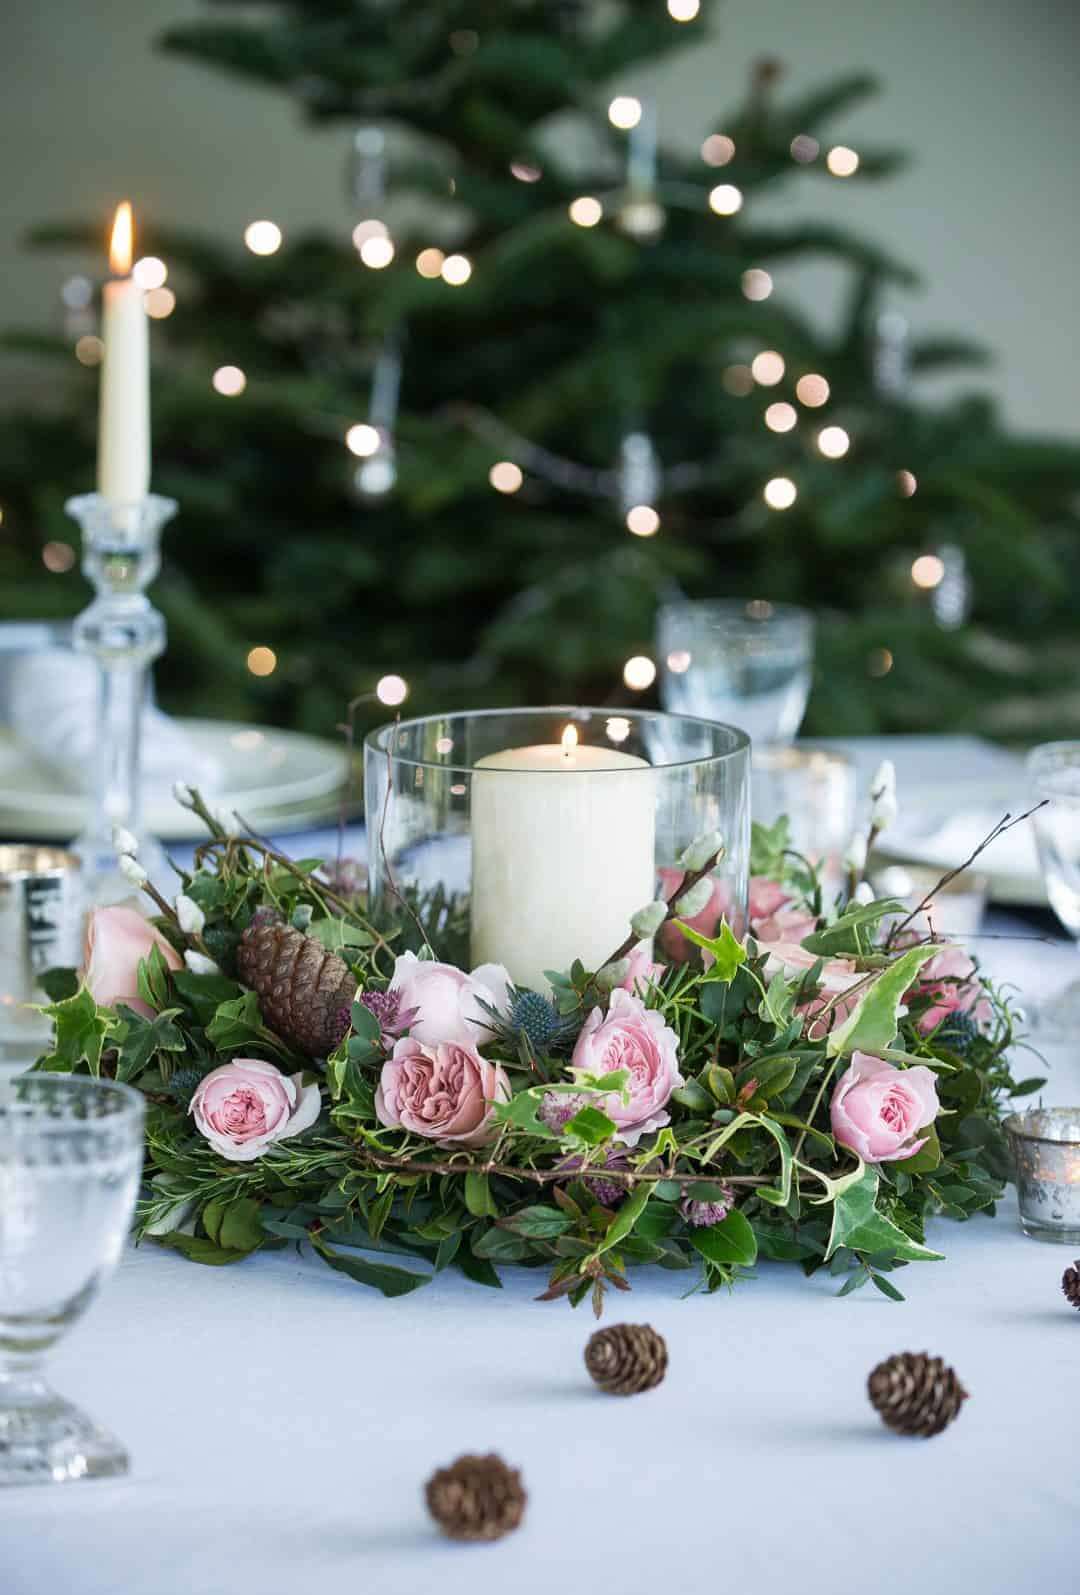 Christmas Flower Arrangements Simple Rustic Diy Ideas To Try From Britain With Love